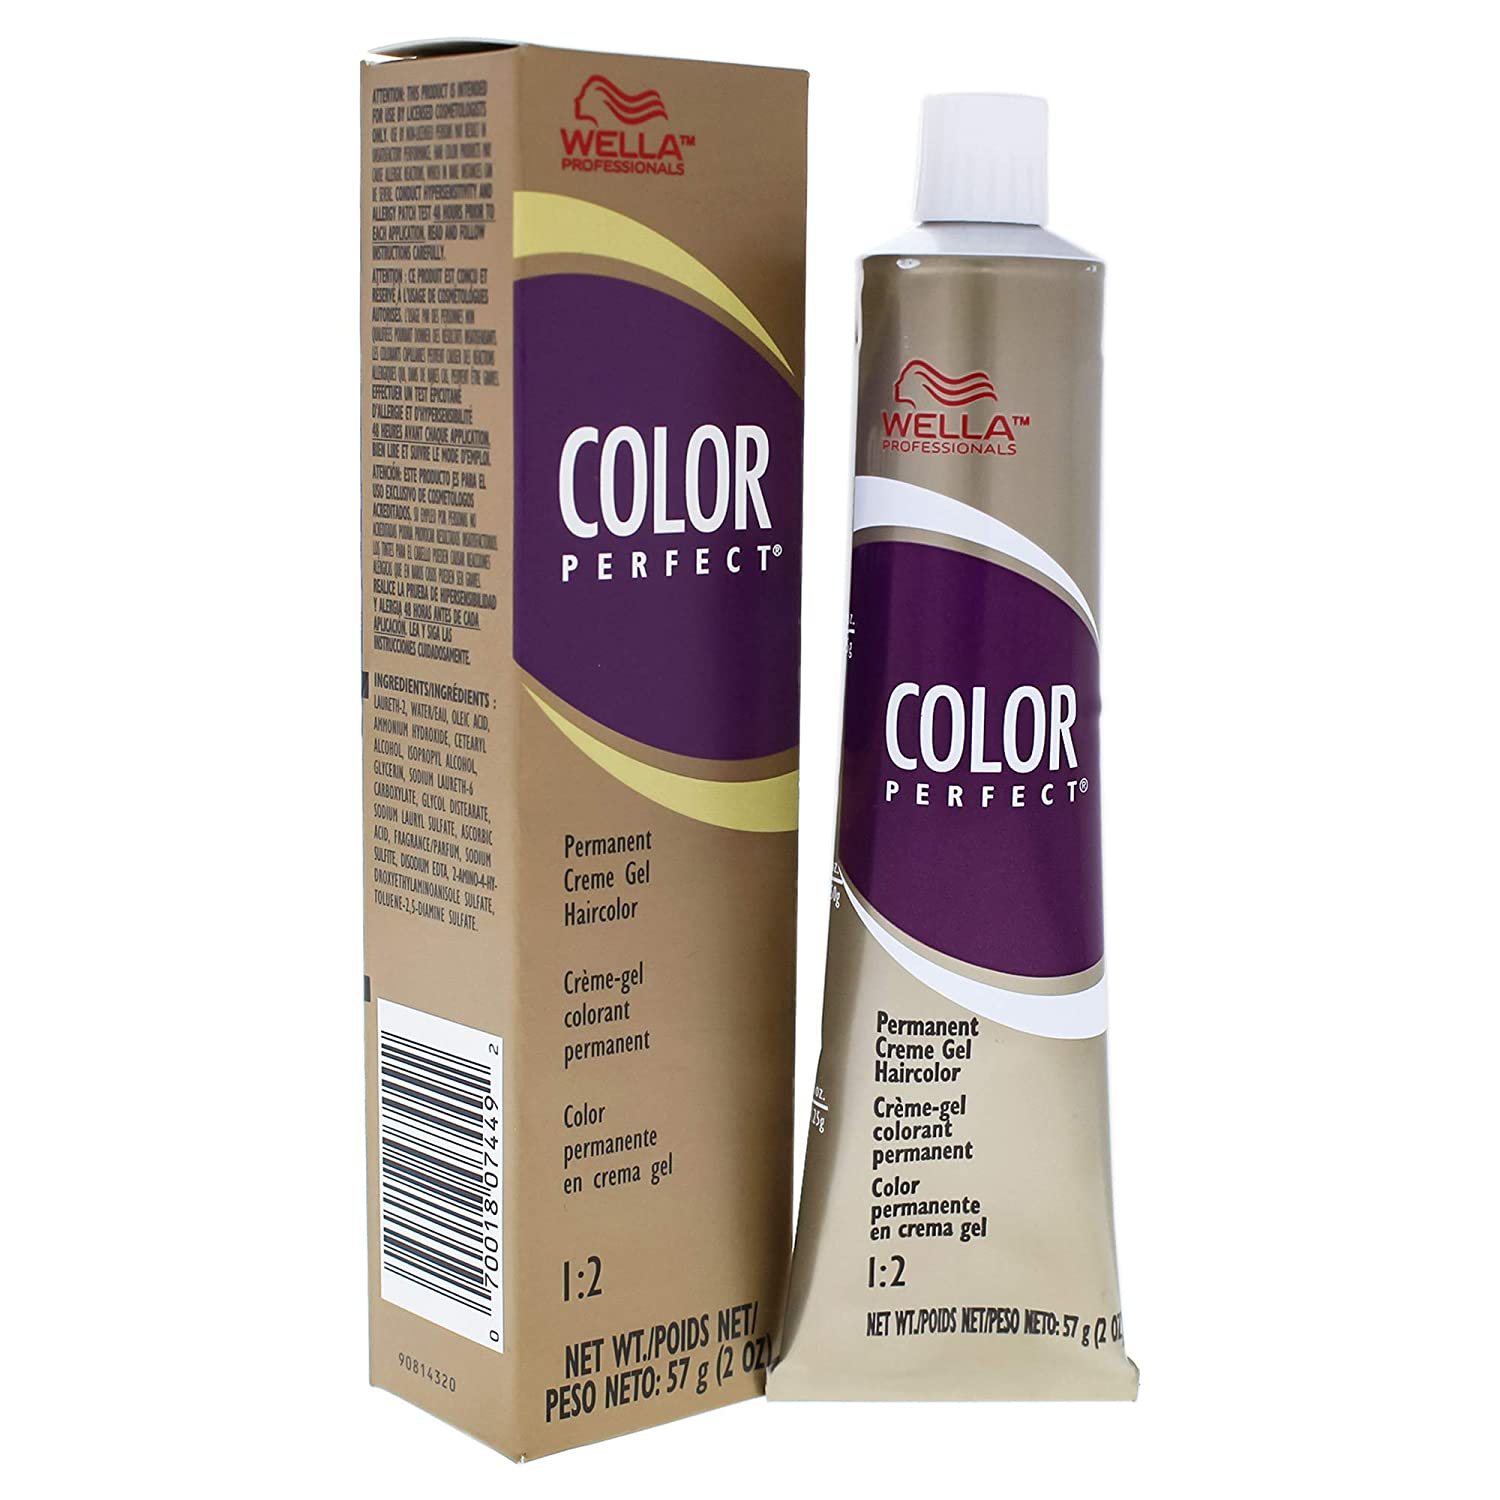 Wella Color Perfect Permanent Creme Gel Hair Color Bb Blonding Booster for Unisex, 2 Ounce